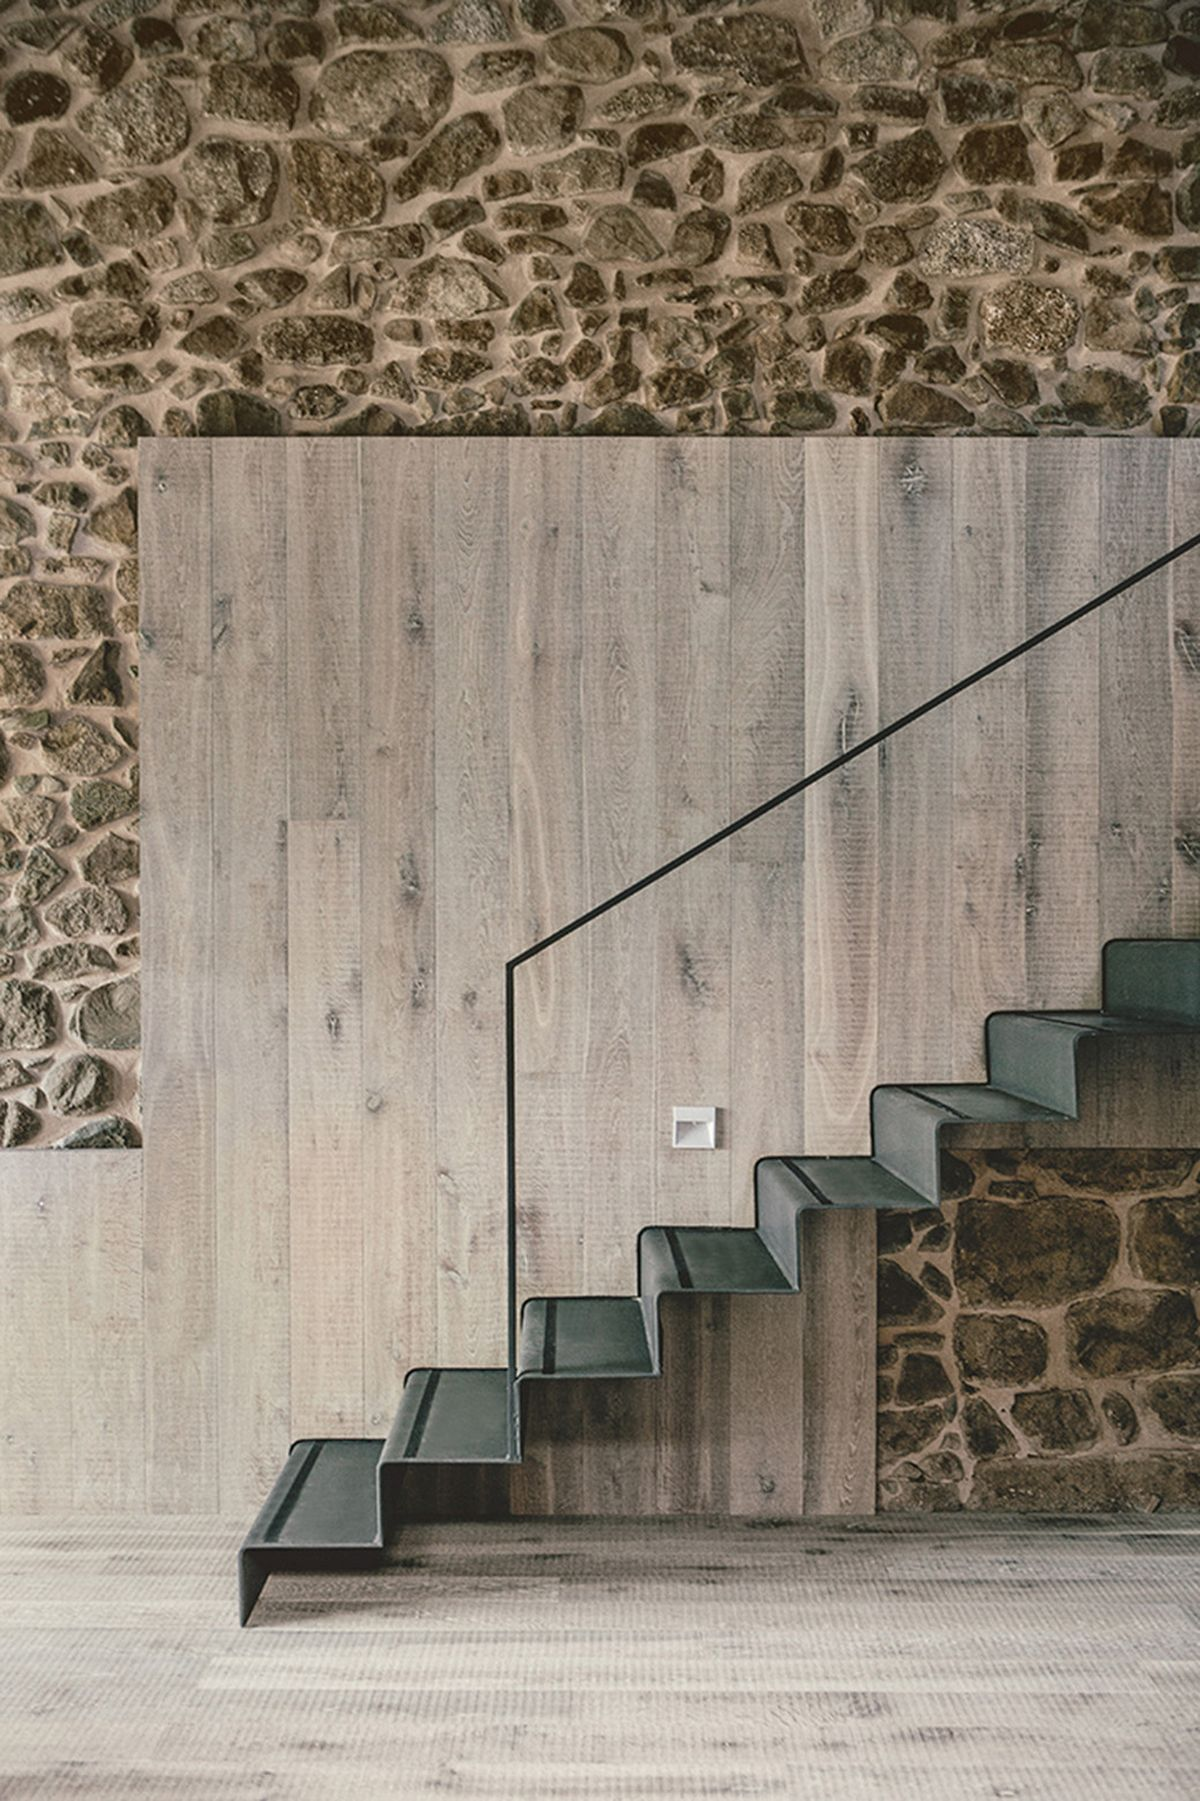 Rustic house gets rehabilitated in Spain - staircase wall